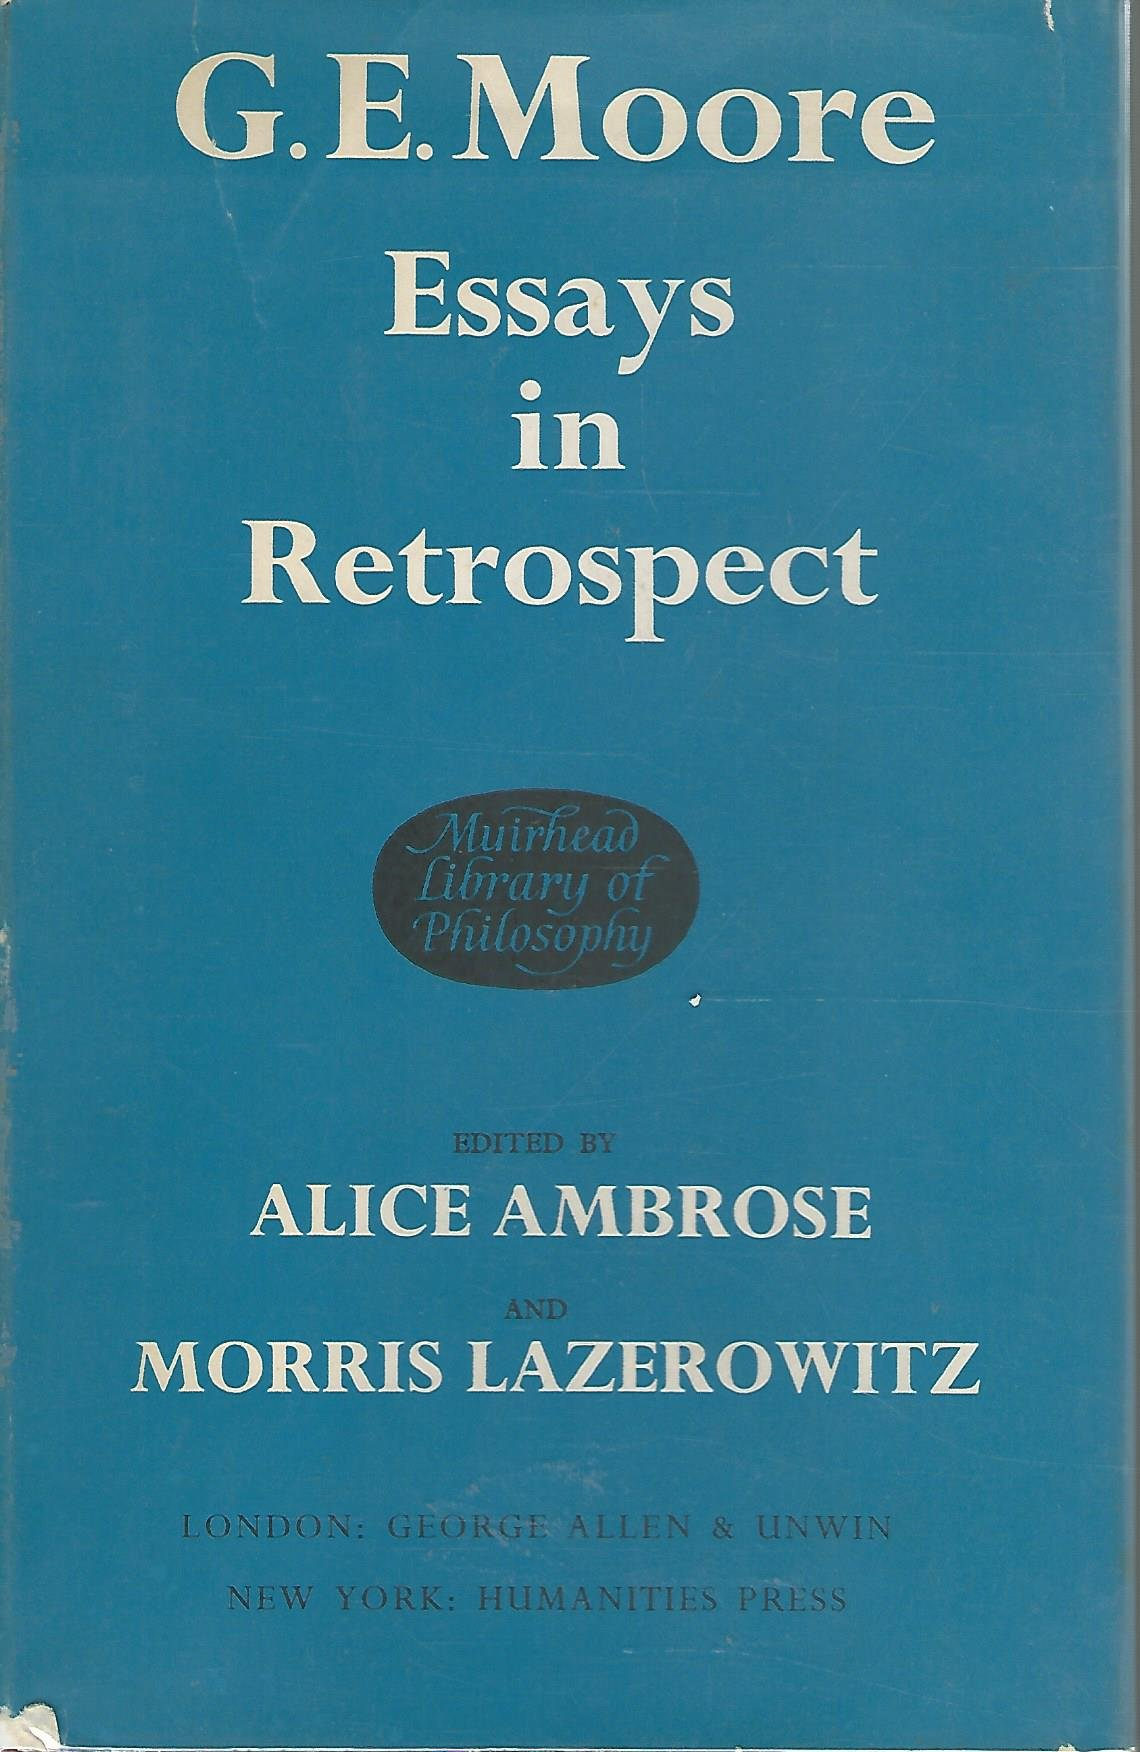 Read Online G E Moore: Essays in Retrospect (Muirhead Library of Philosophy) pdf epub